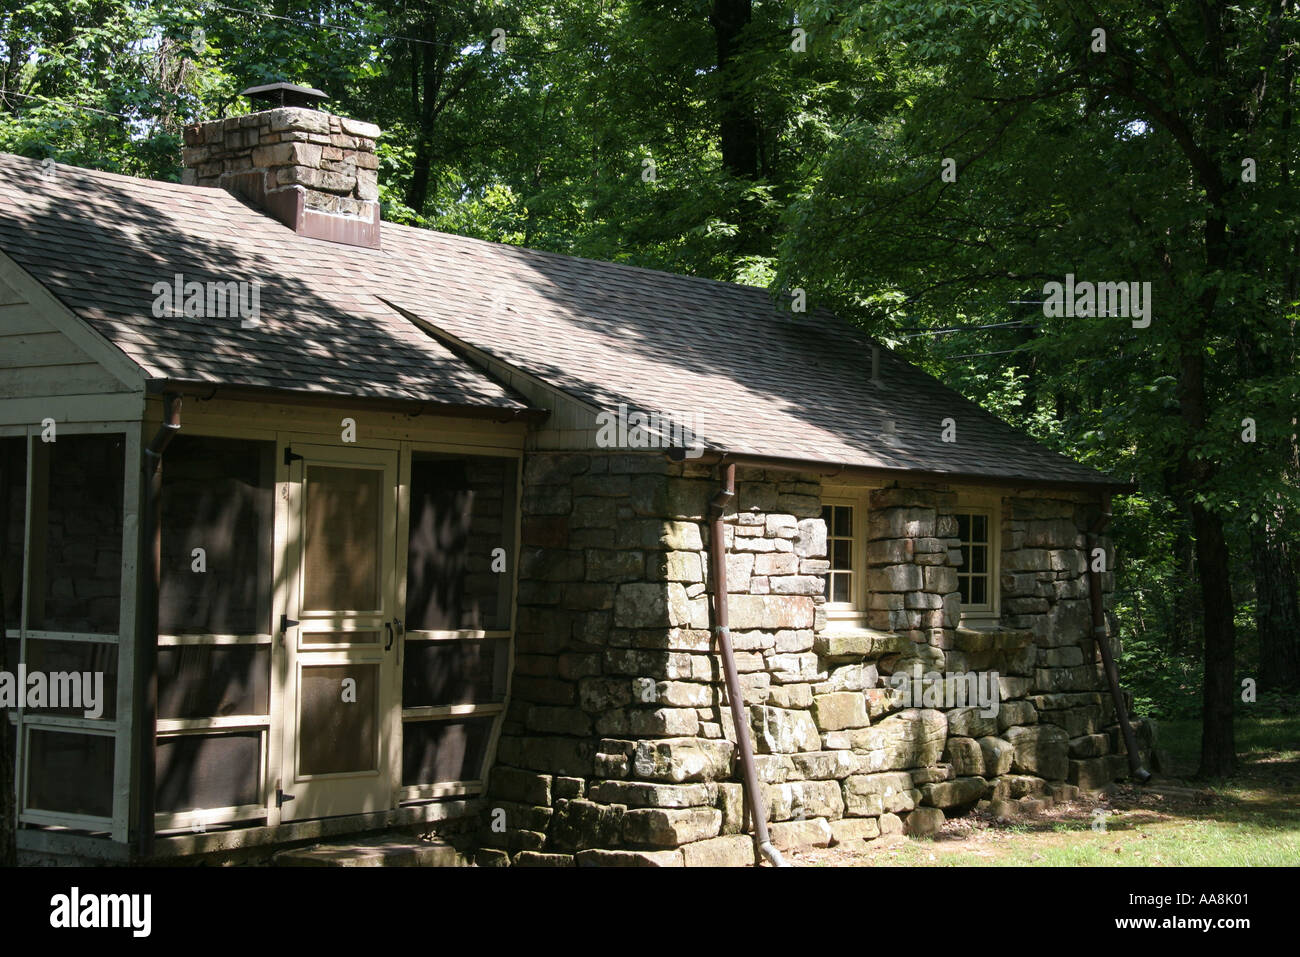 Merveilleux Huntsville Alabama Monte Sano State Park Rental Cabin Porch Family Cottage